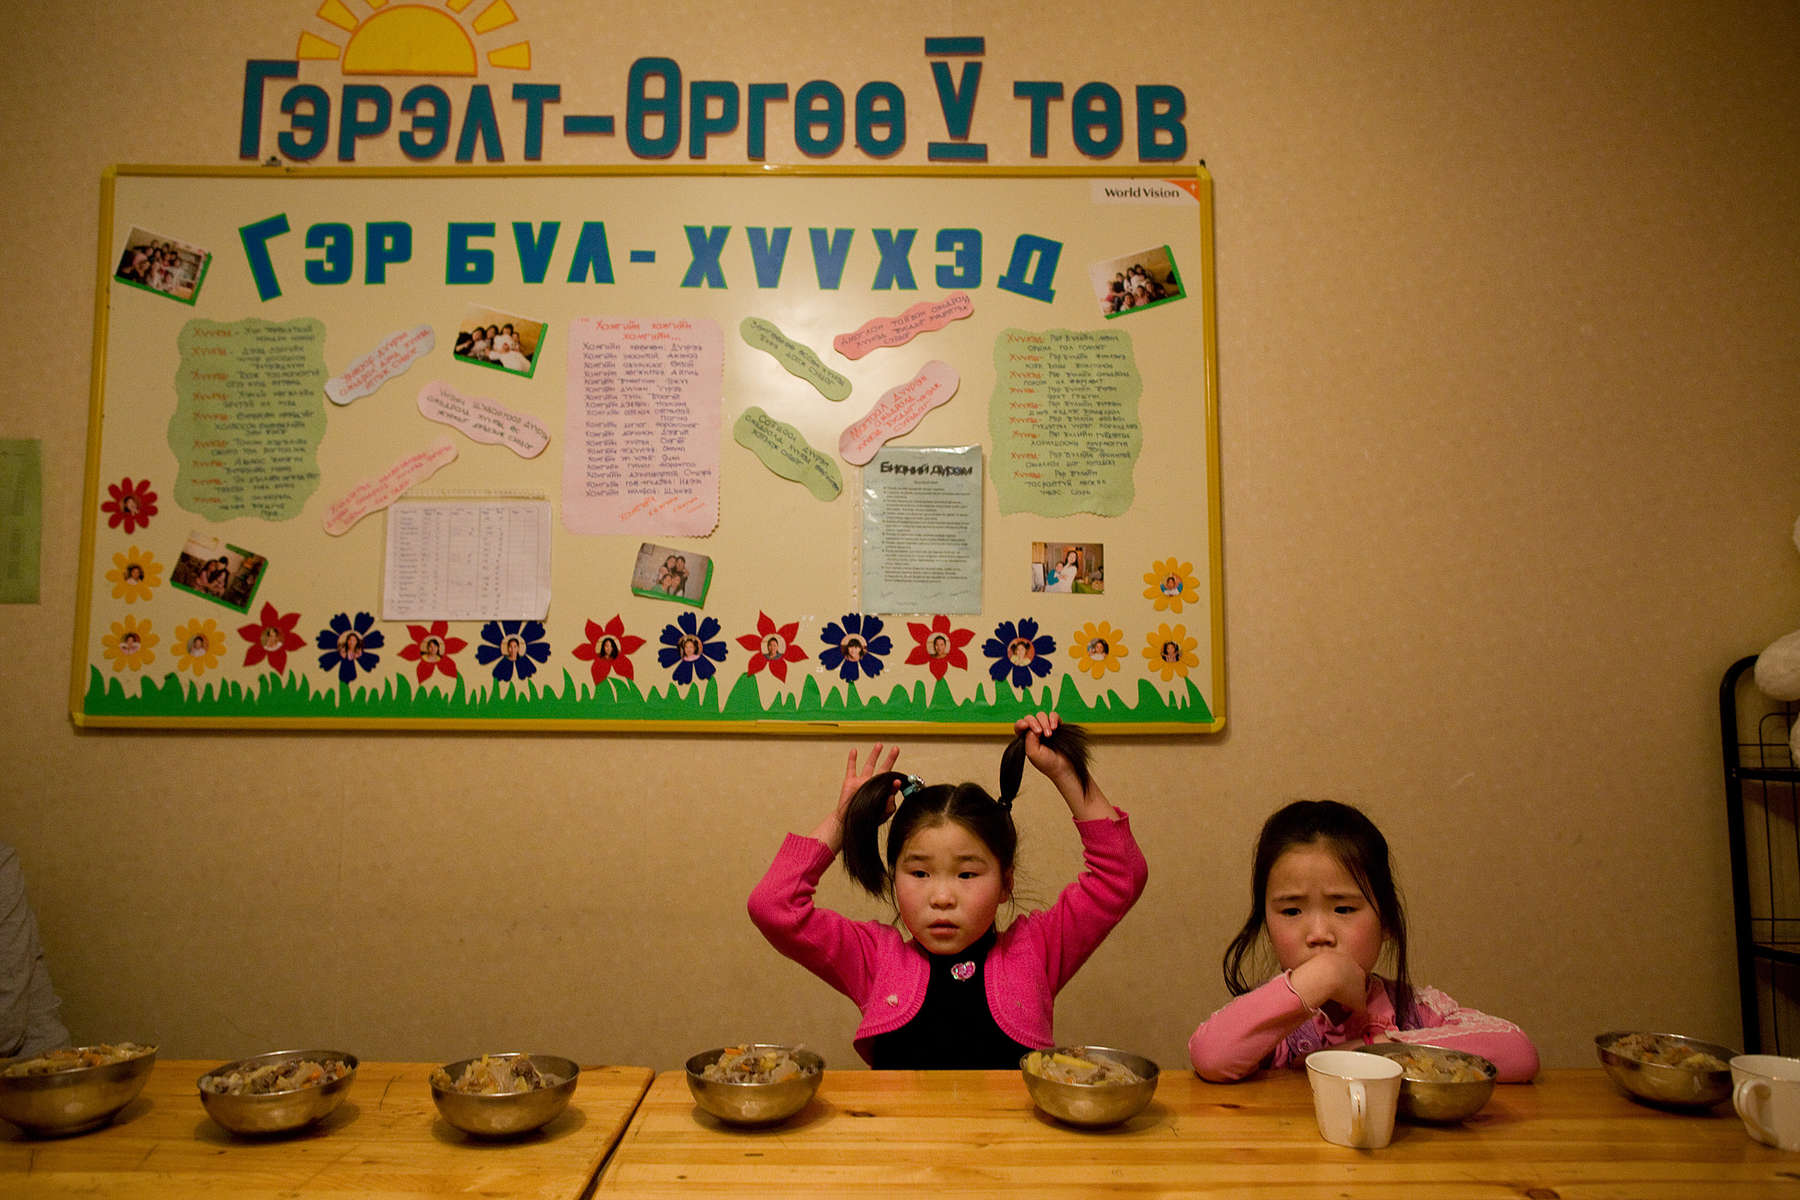 ULAAN BAATAR, MONGOLIA-MARCH 10 :  At the Lighthouse girls shelter girls wait for everyone to sit down for dinner March 10, 2010  in Ulaan Baatar, Mongolia. The Lighthouse is a World Vision sponsored shelter where 18 girls live from age 5-18. After that the state labels them as being abandoned or orphaned they go from the temporary welfare center to the more permanent shelters like the Lighthouse wher ethey live together is a home, sleeping, eating and going to public schools. Mongolia suffers with a very high number of alcoholics, all consuming cheap Mongolian vodka that is readily available to the poor and the unemployed, Many Mongolians have immigrated to the capitol city from the far away provinces seeking employment, living in rented traditional circular felt yurts with no running water or electricity. The problem is severe causing the number of street children to rise,  fleeing their abusive, dysfunctional homes. Some children are regularly beaten at home, and for the impoverished it is common to send the child out to make money. During the winter this means extreme hardship, the children out on the city streets are dealing with temperatures dropping as low as -25C mid- Winter. This year Mongolia has experienced the worst winter in 30 years. Presently the government has declared an emergency requiring foreign aid to alleviate the impact of the {quote} Zud{quote} ( Mongolian term for a multiple natural disaster) caused by bitter cold and thick snow that has effected 68% of the provinces. (Photo by Paula Bronstein /Getty Images)